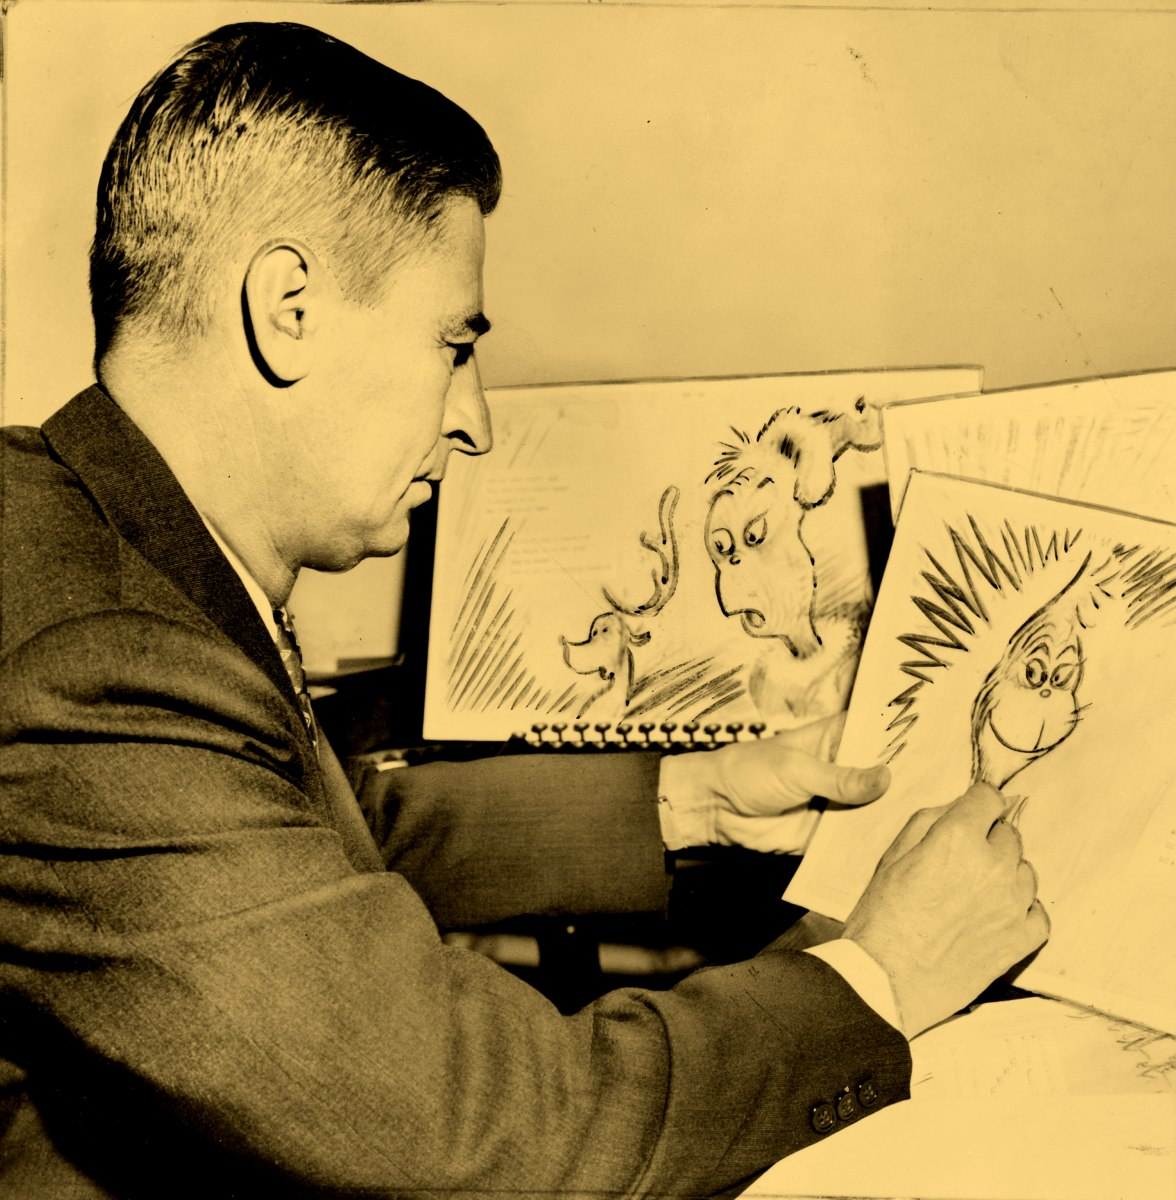 Dr. Seuss: Politics in Children's Literature